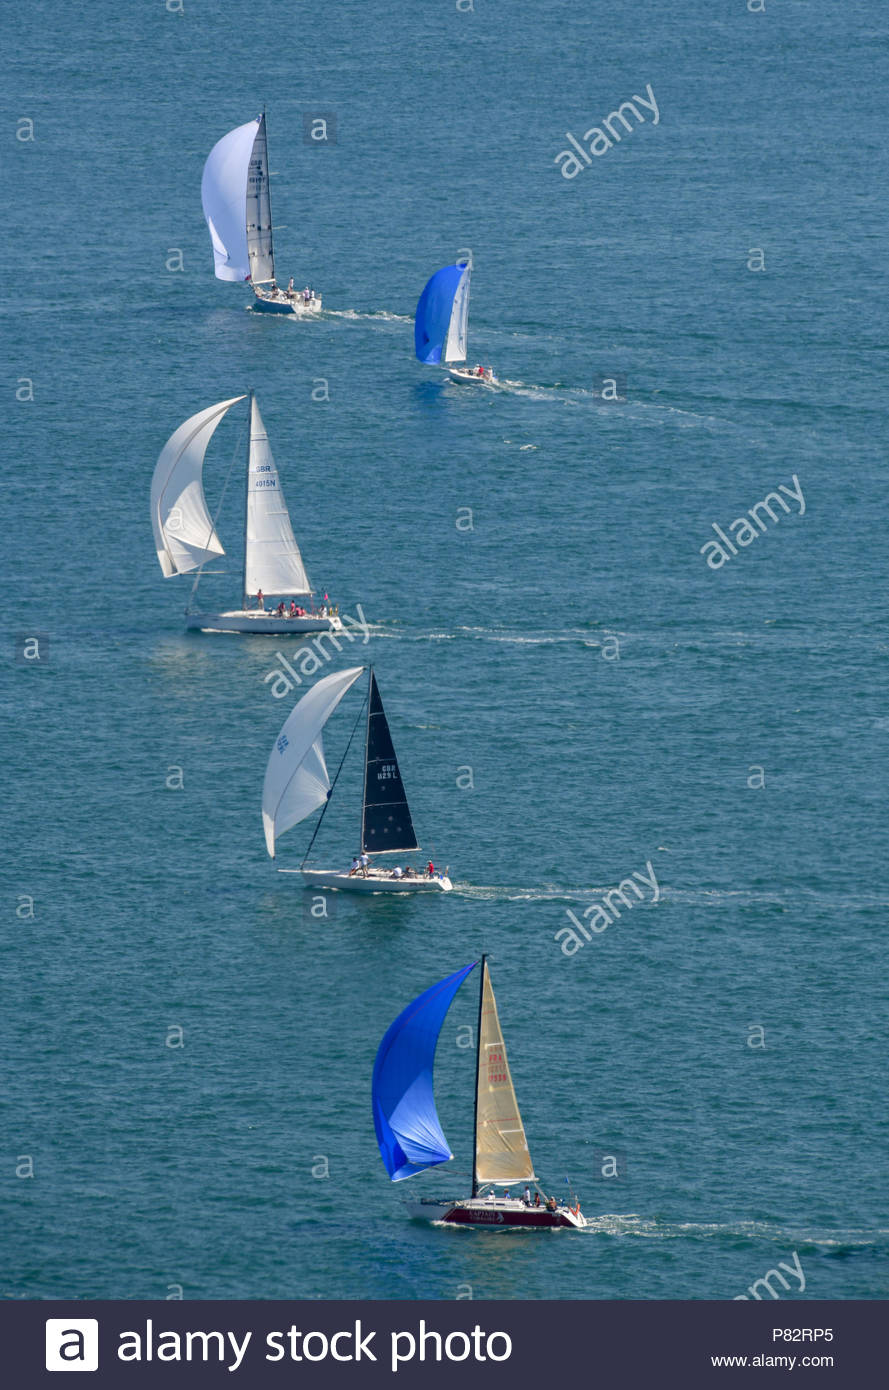 Racing yachts taking part in the annual Round the Island Race off the coast of the Isle of Wight on a hot summers day with very little wind. - Stock Image